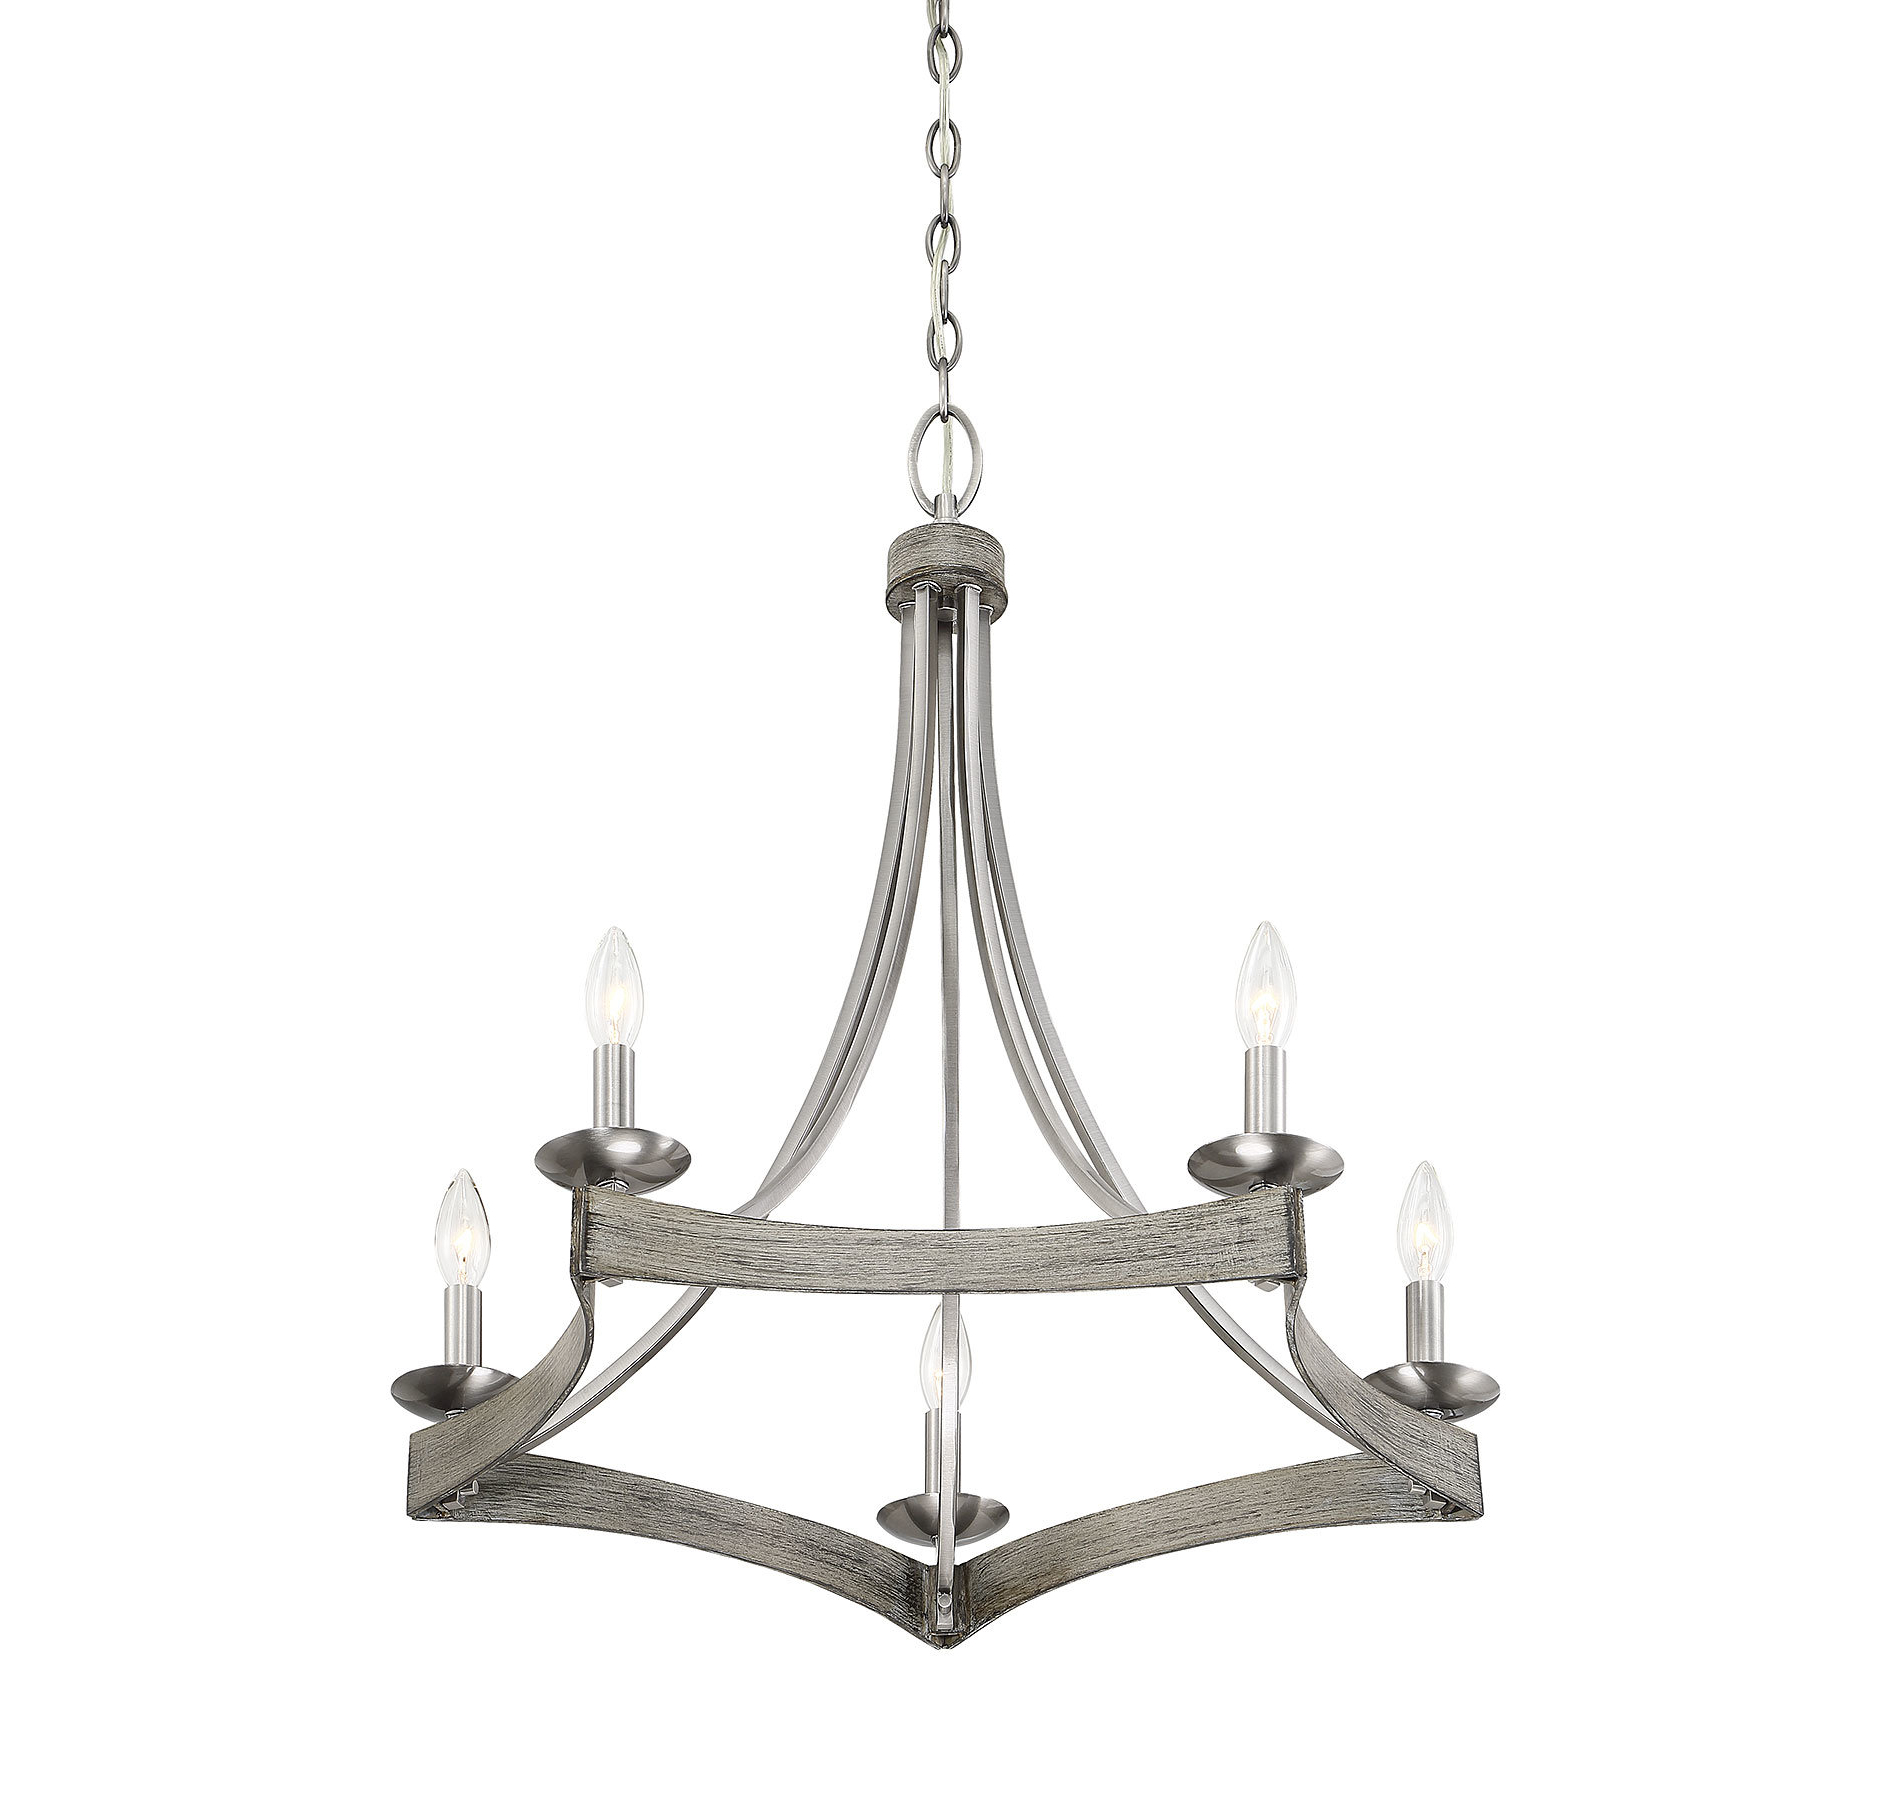 Fashionable Berger 5 Light Candle Style Chandeliers Regarding Unger 5 Light Candle Style Chandelier (View 10 of 20)